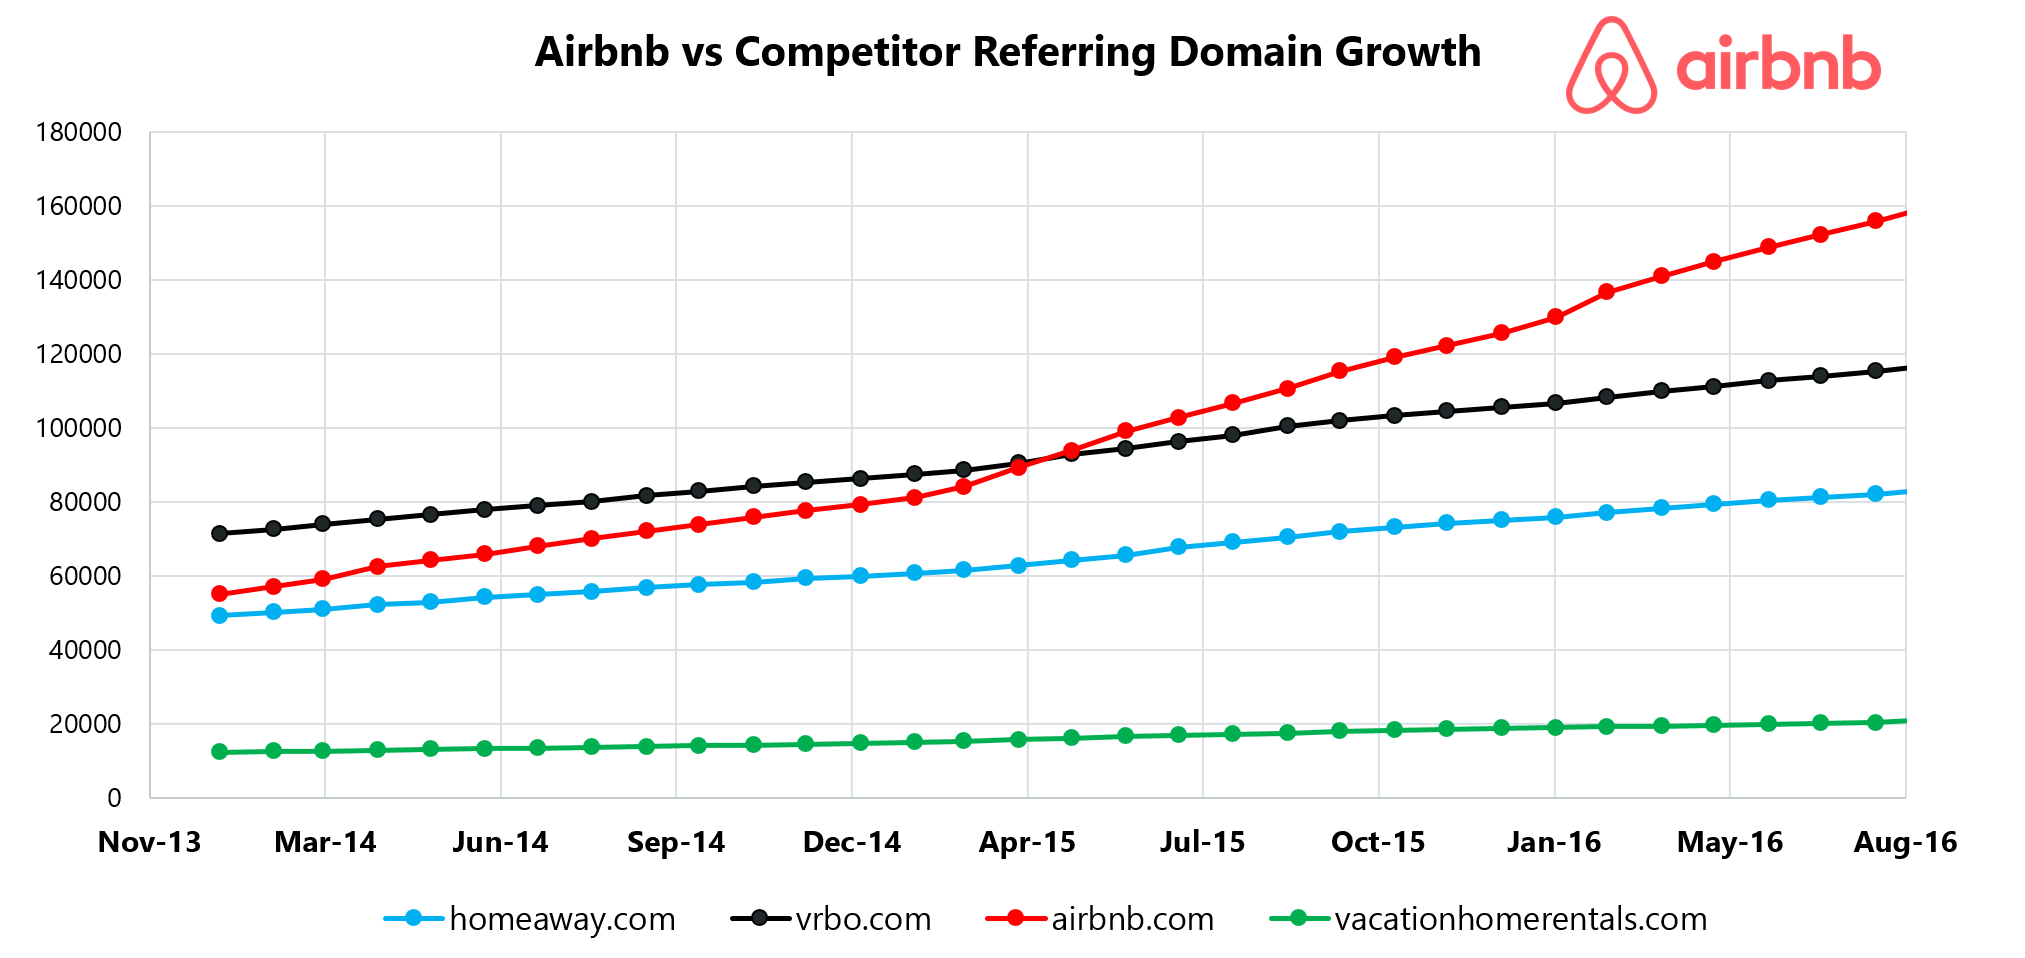 Airbnb Competitor Referring Domain Growth